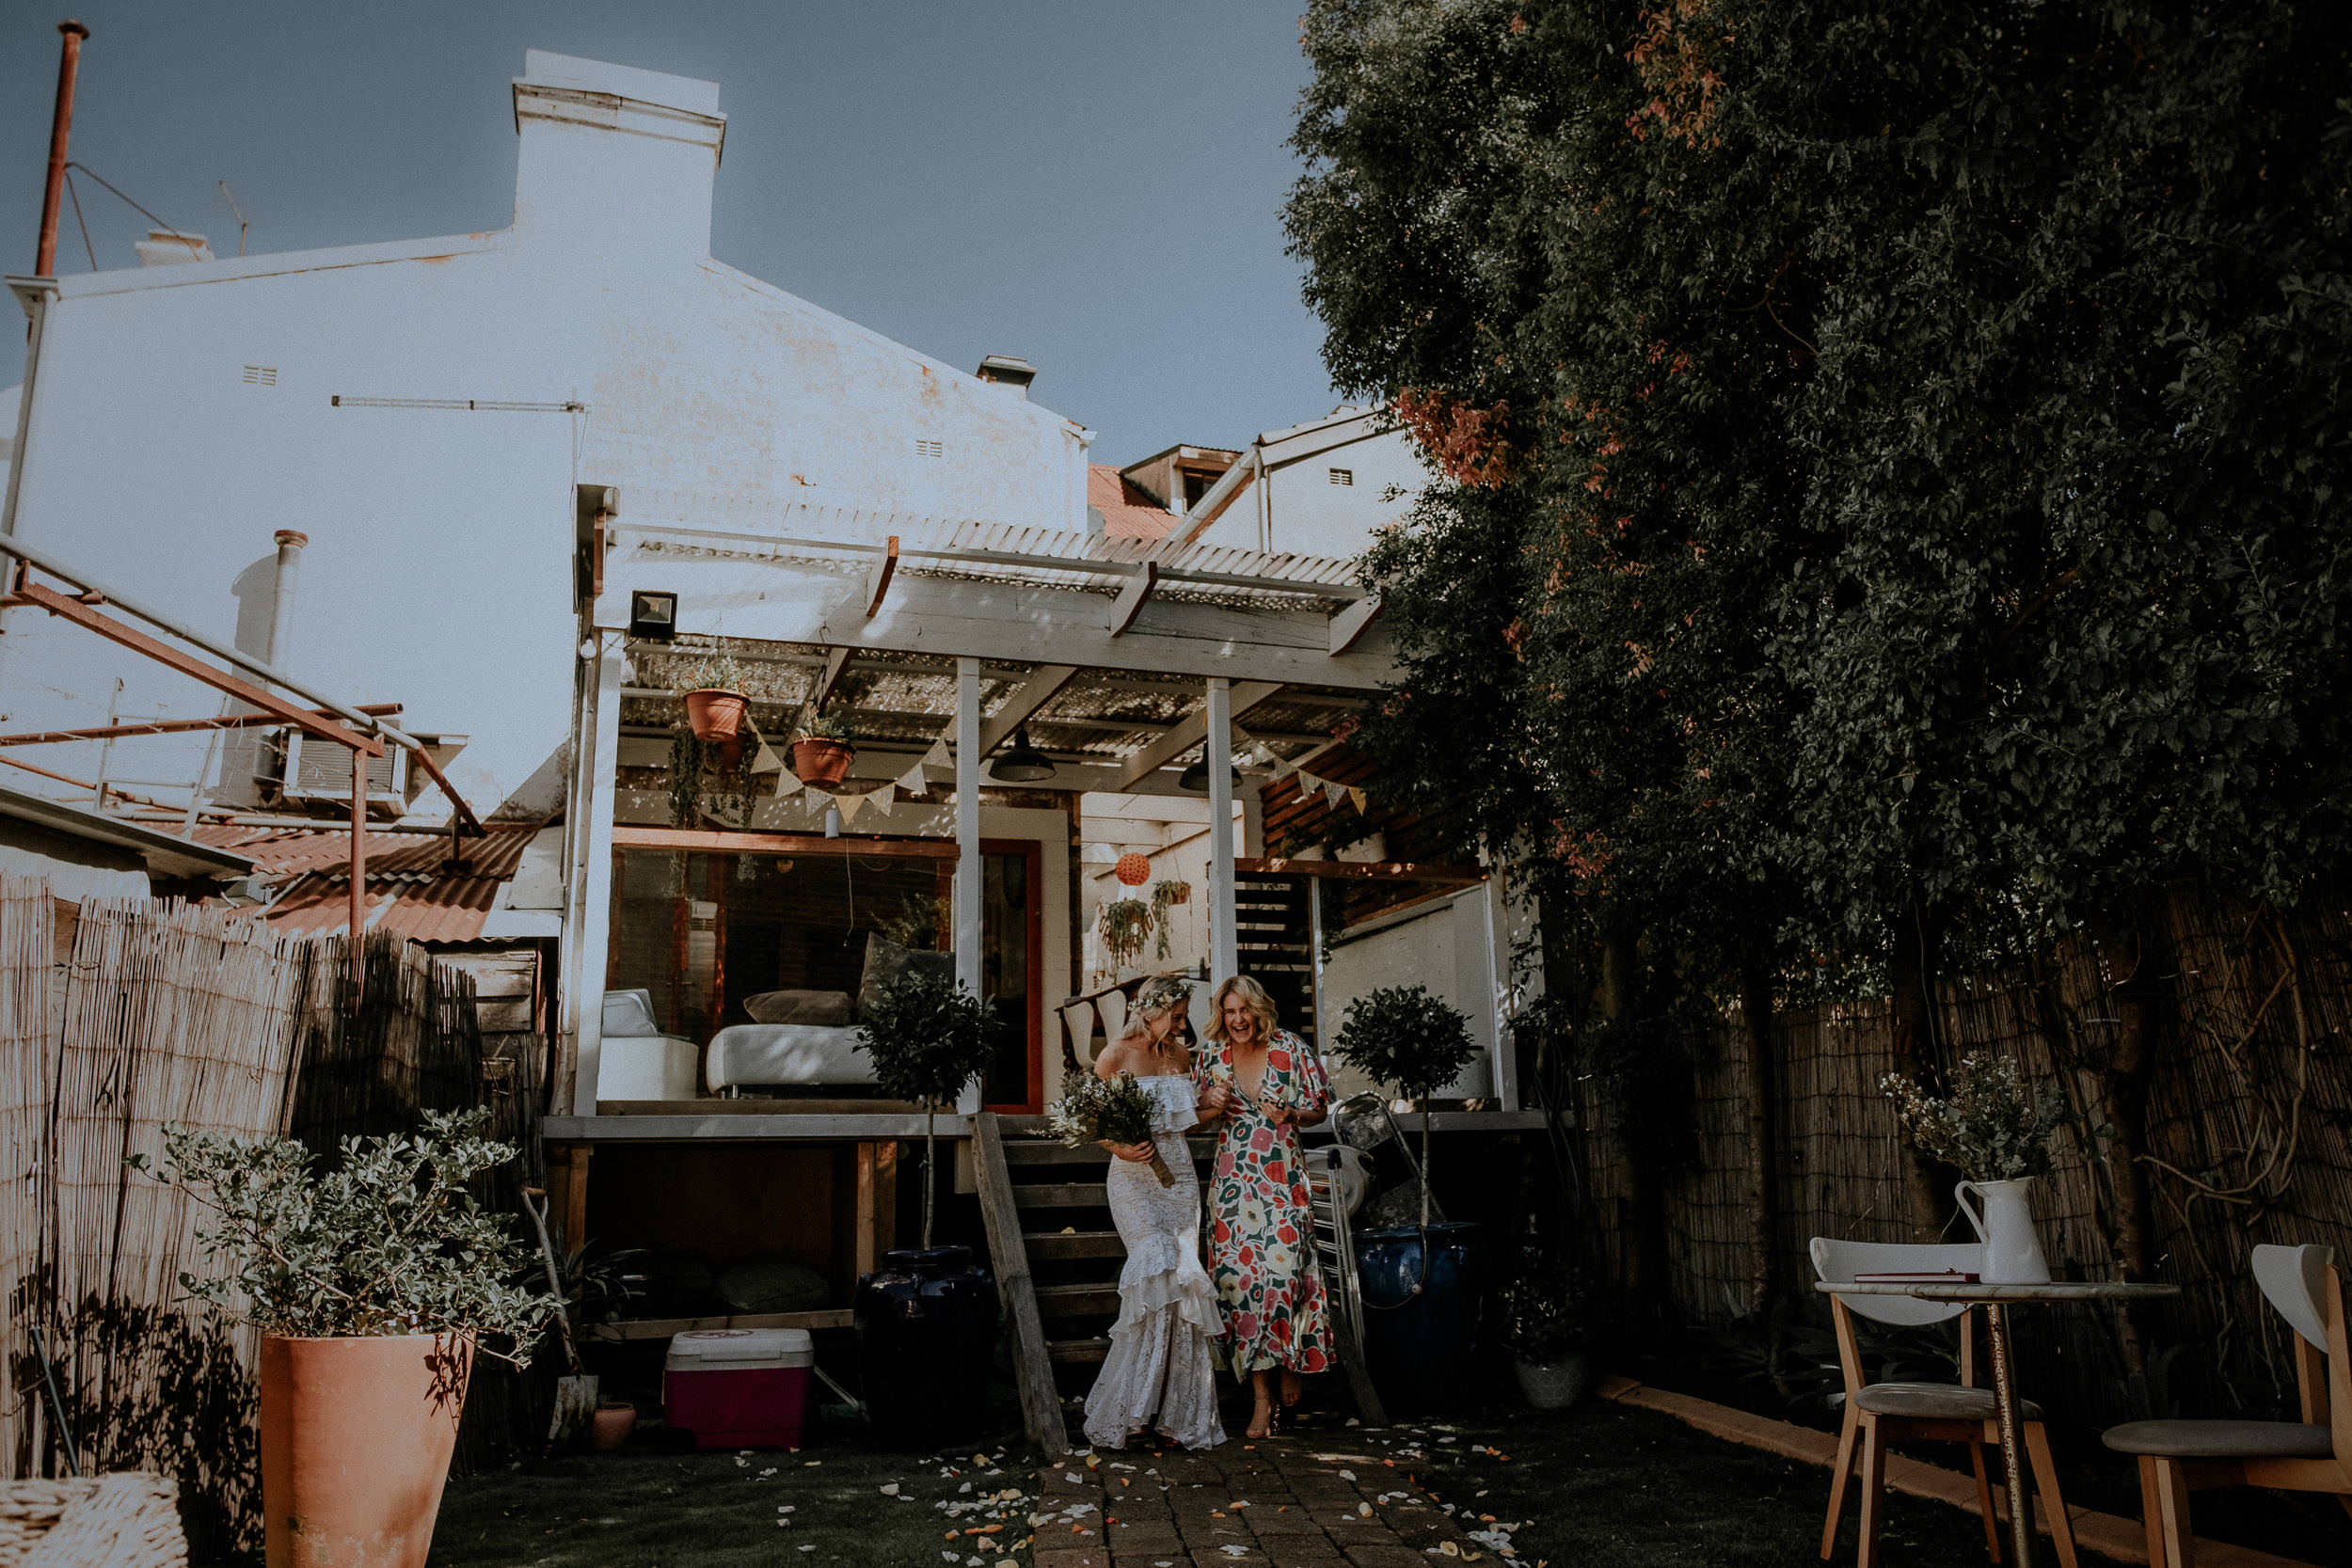 kings _ thieves - beth _ corey backyard airbnb elopement sydney - submission -60.jpg